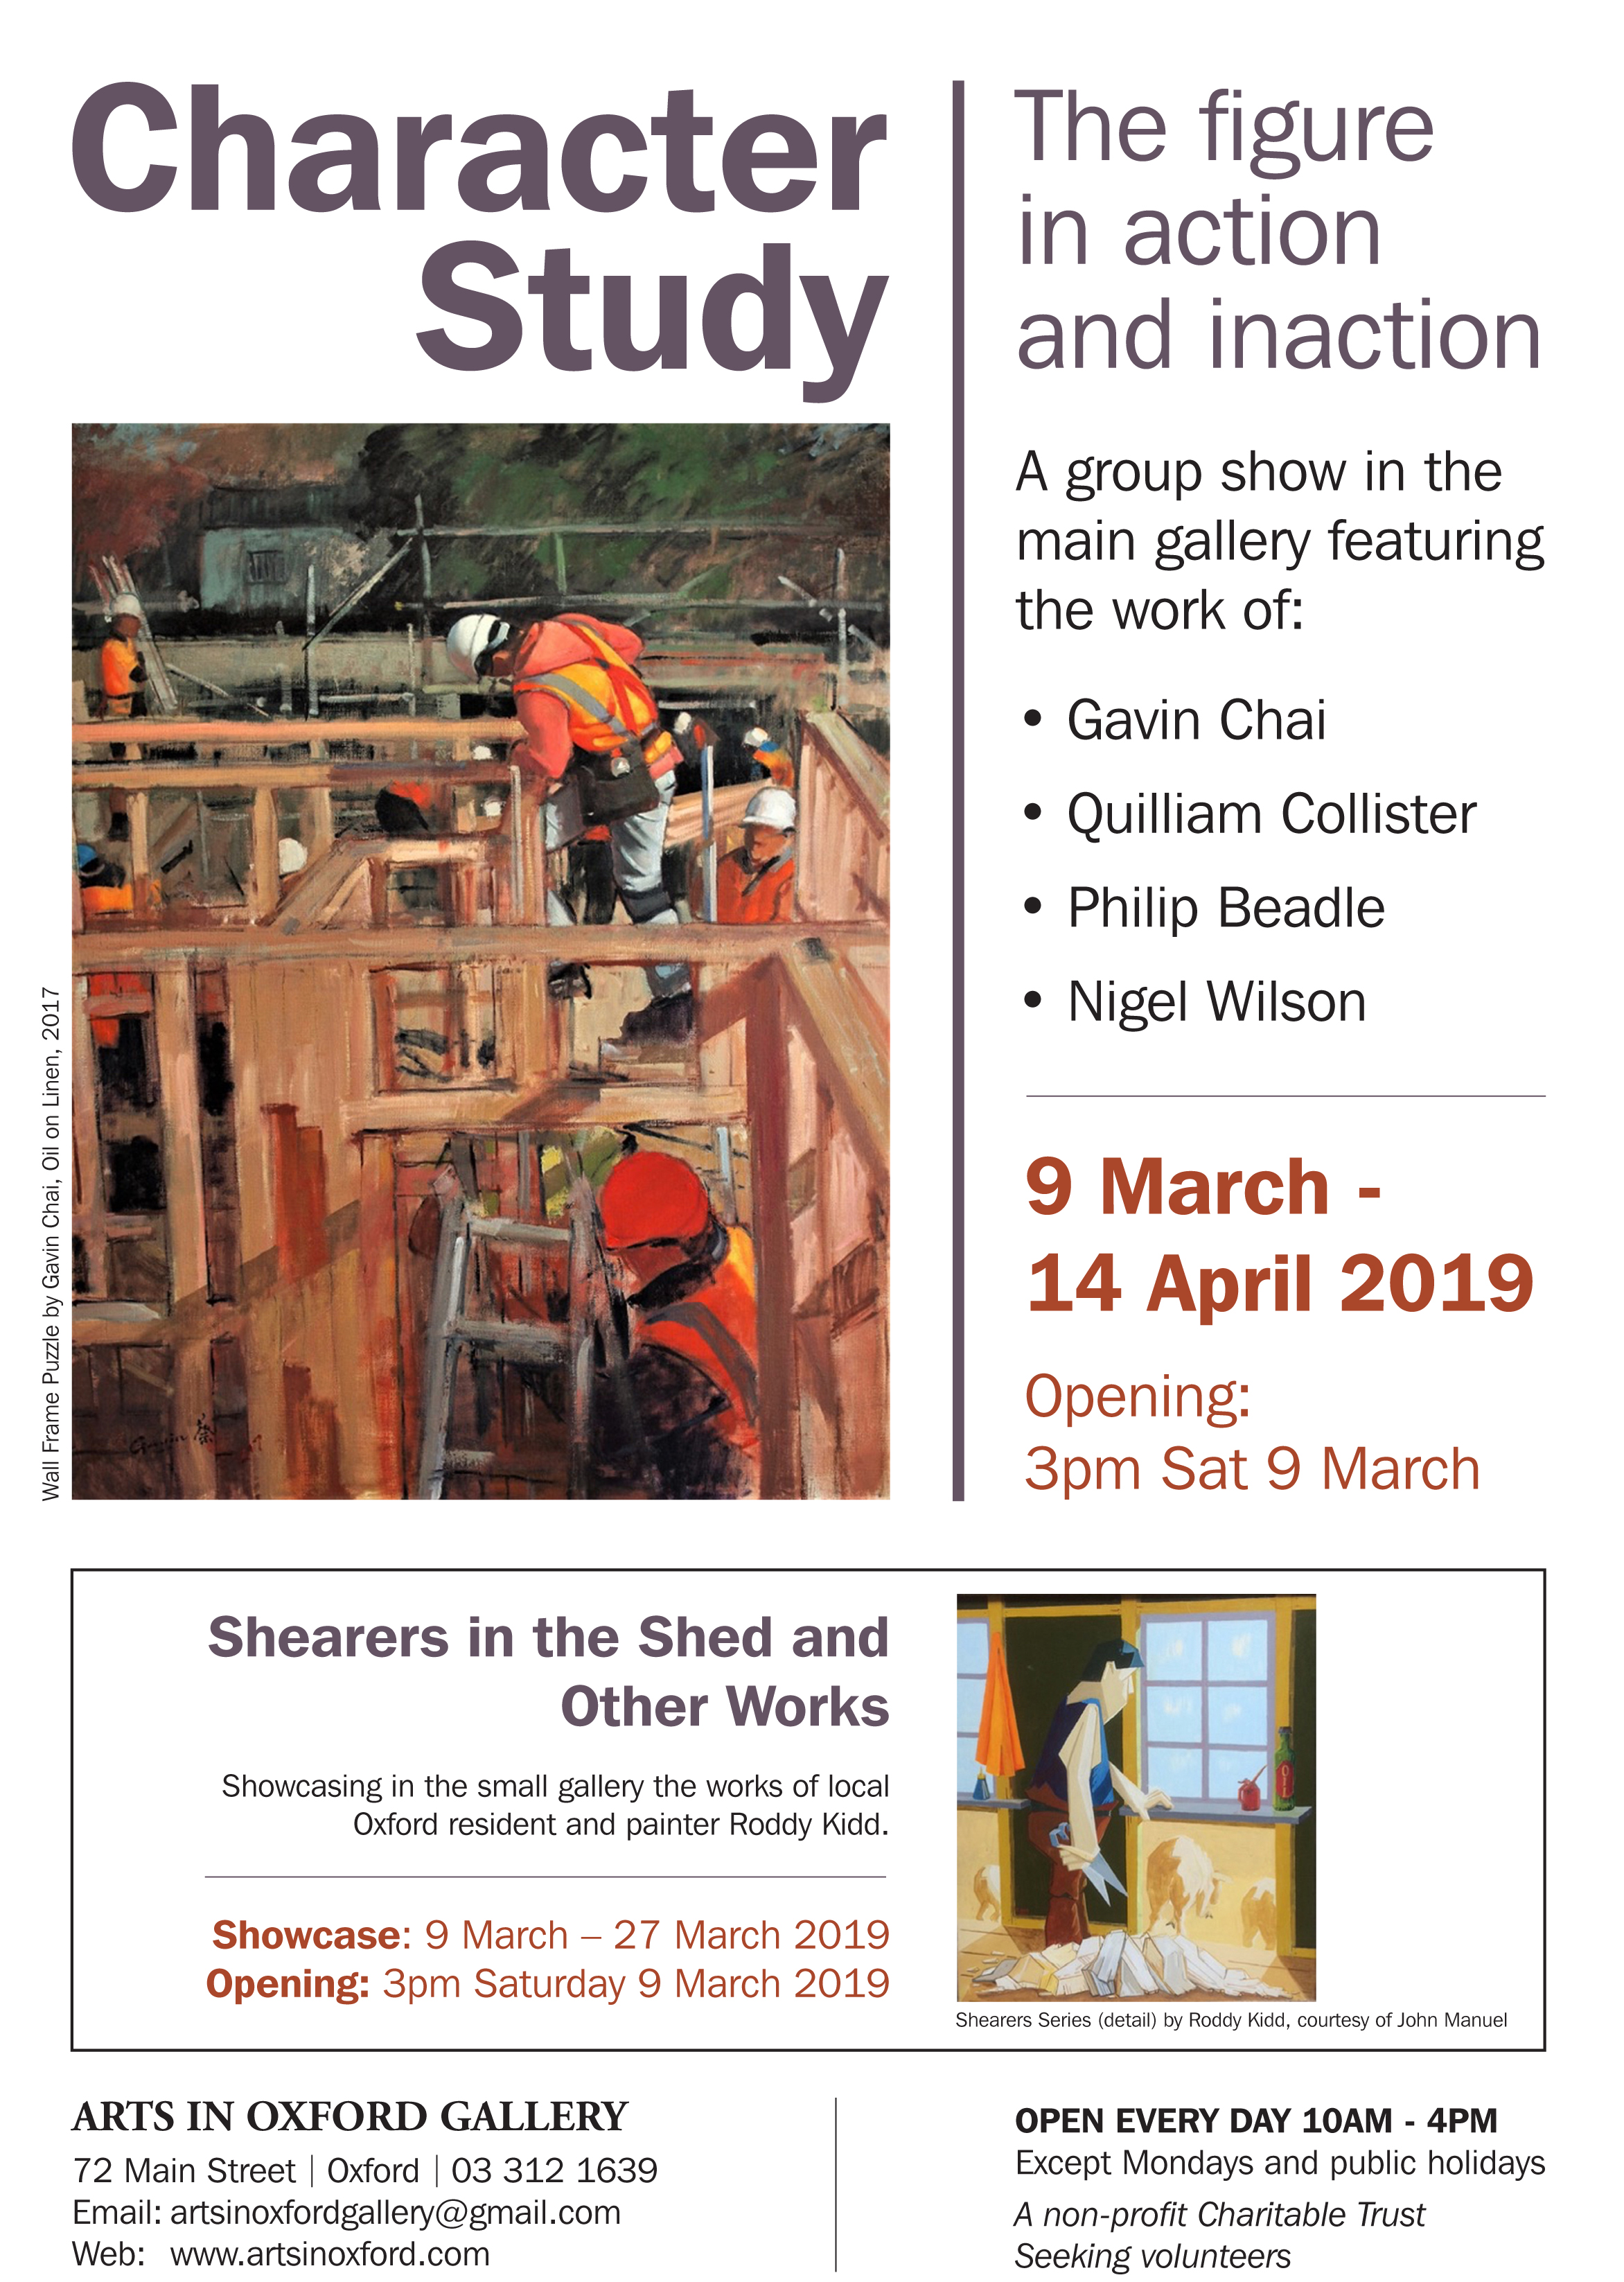 Character Study is a group show by four artists; Gavin Chai, Quilliam Collister, Philip Beadle and Nigel Wilson.  Showcased in the small gallery  is the Shearers in the Shed Series by Roddy Kidd.  Both shows opening at 3pm on Saturday 9th March.  All welcome to attend.